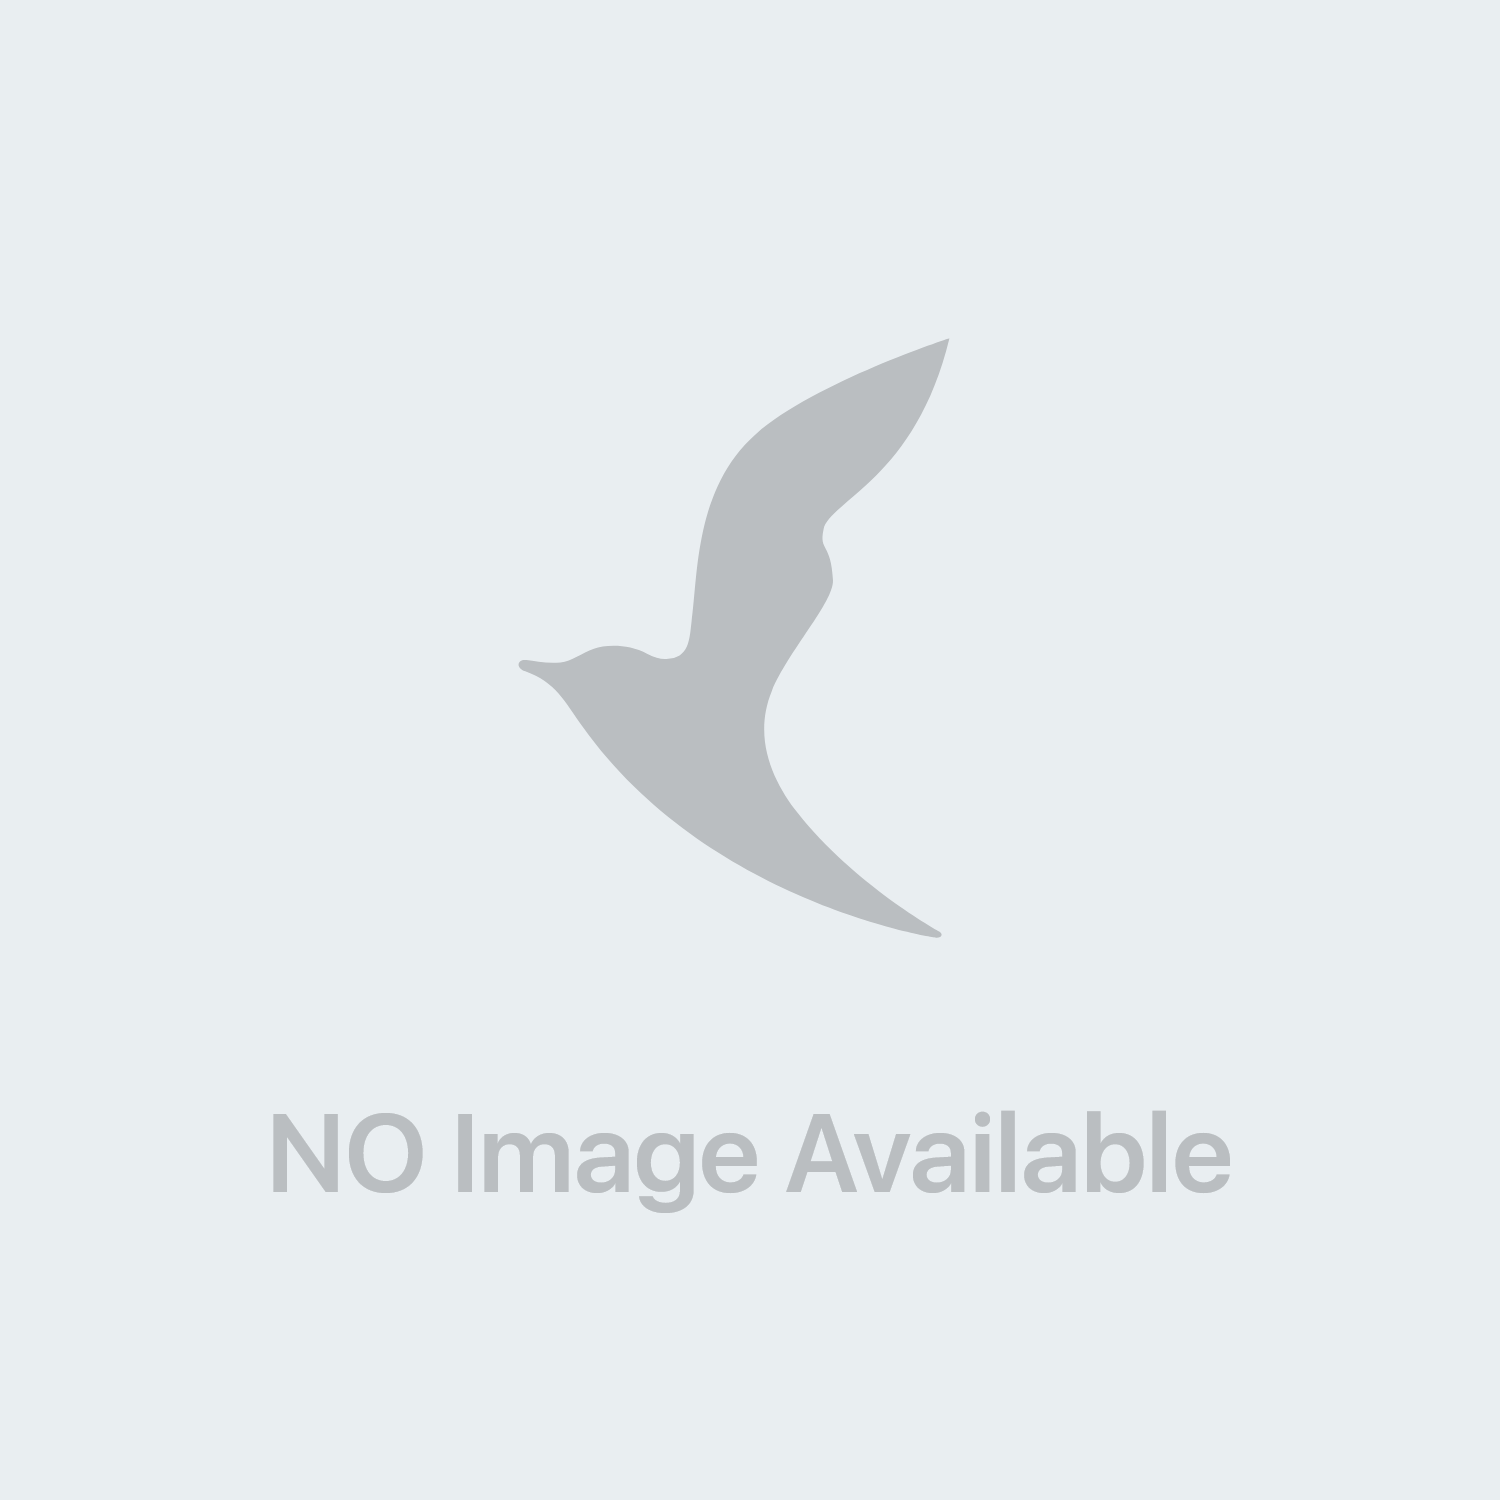 Korff White Silk Crema Antirughe Antimacchie Uniformante con SPF 30 50 ml